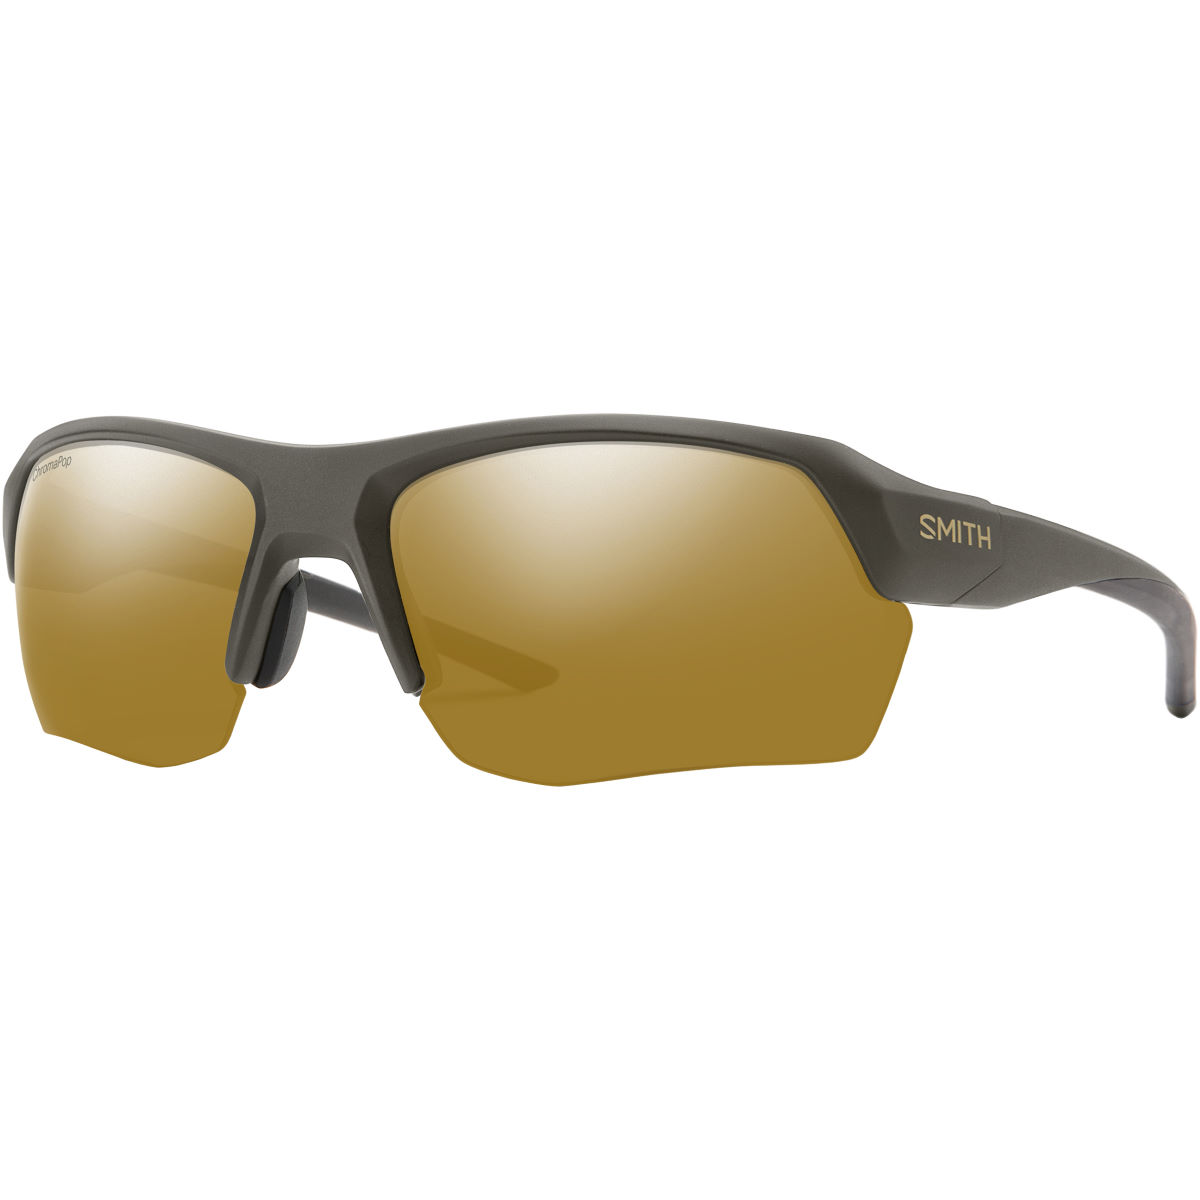 Smith Tempo Max Sunglasses - Gafas de sol